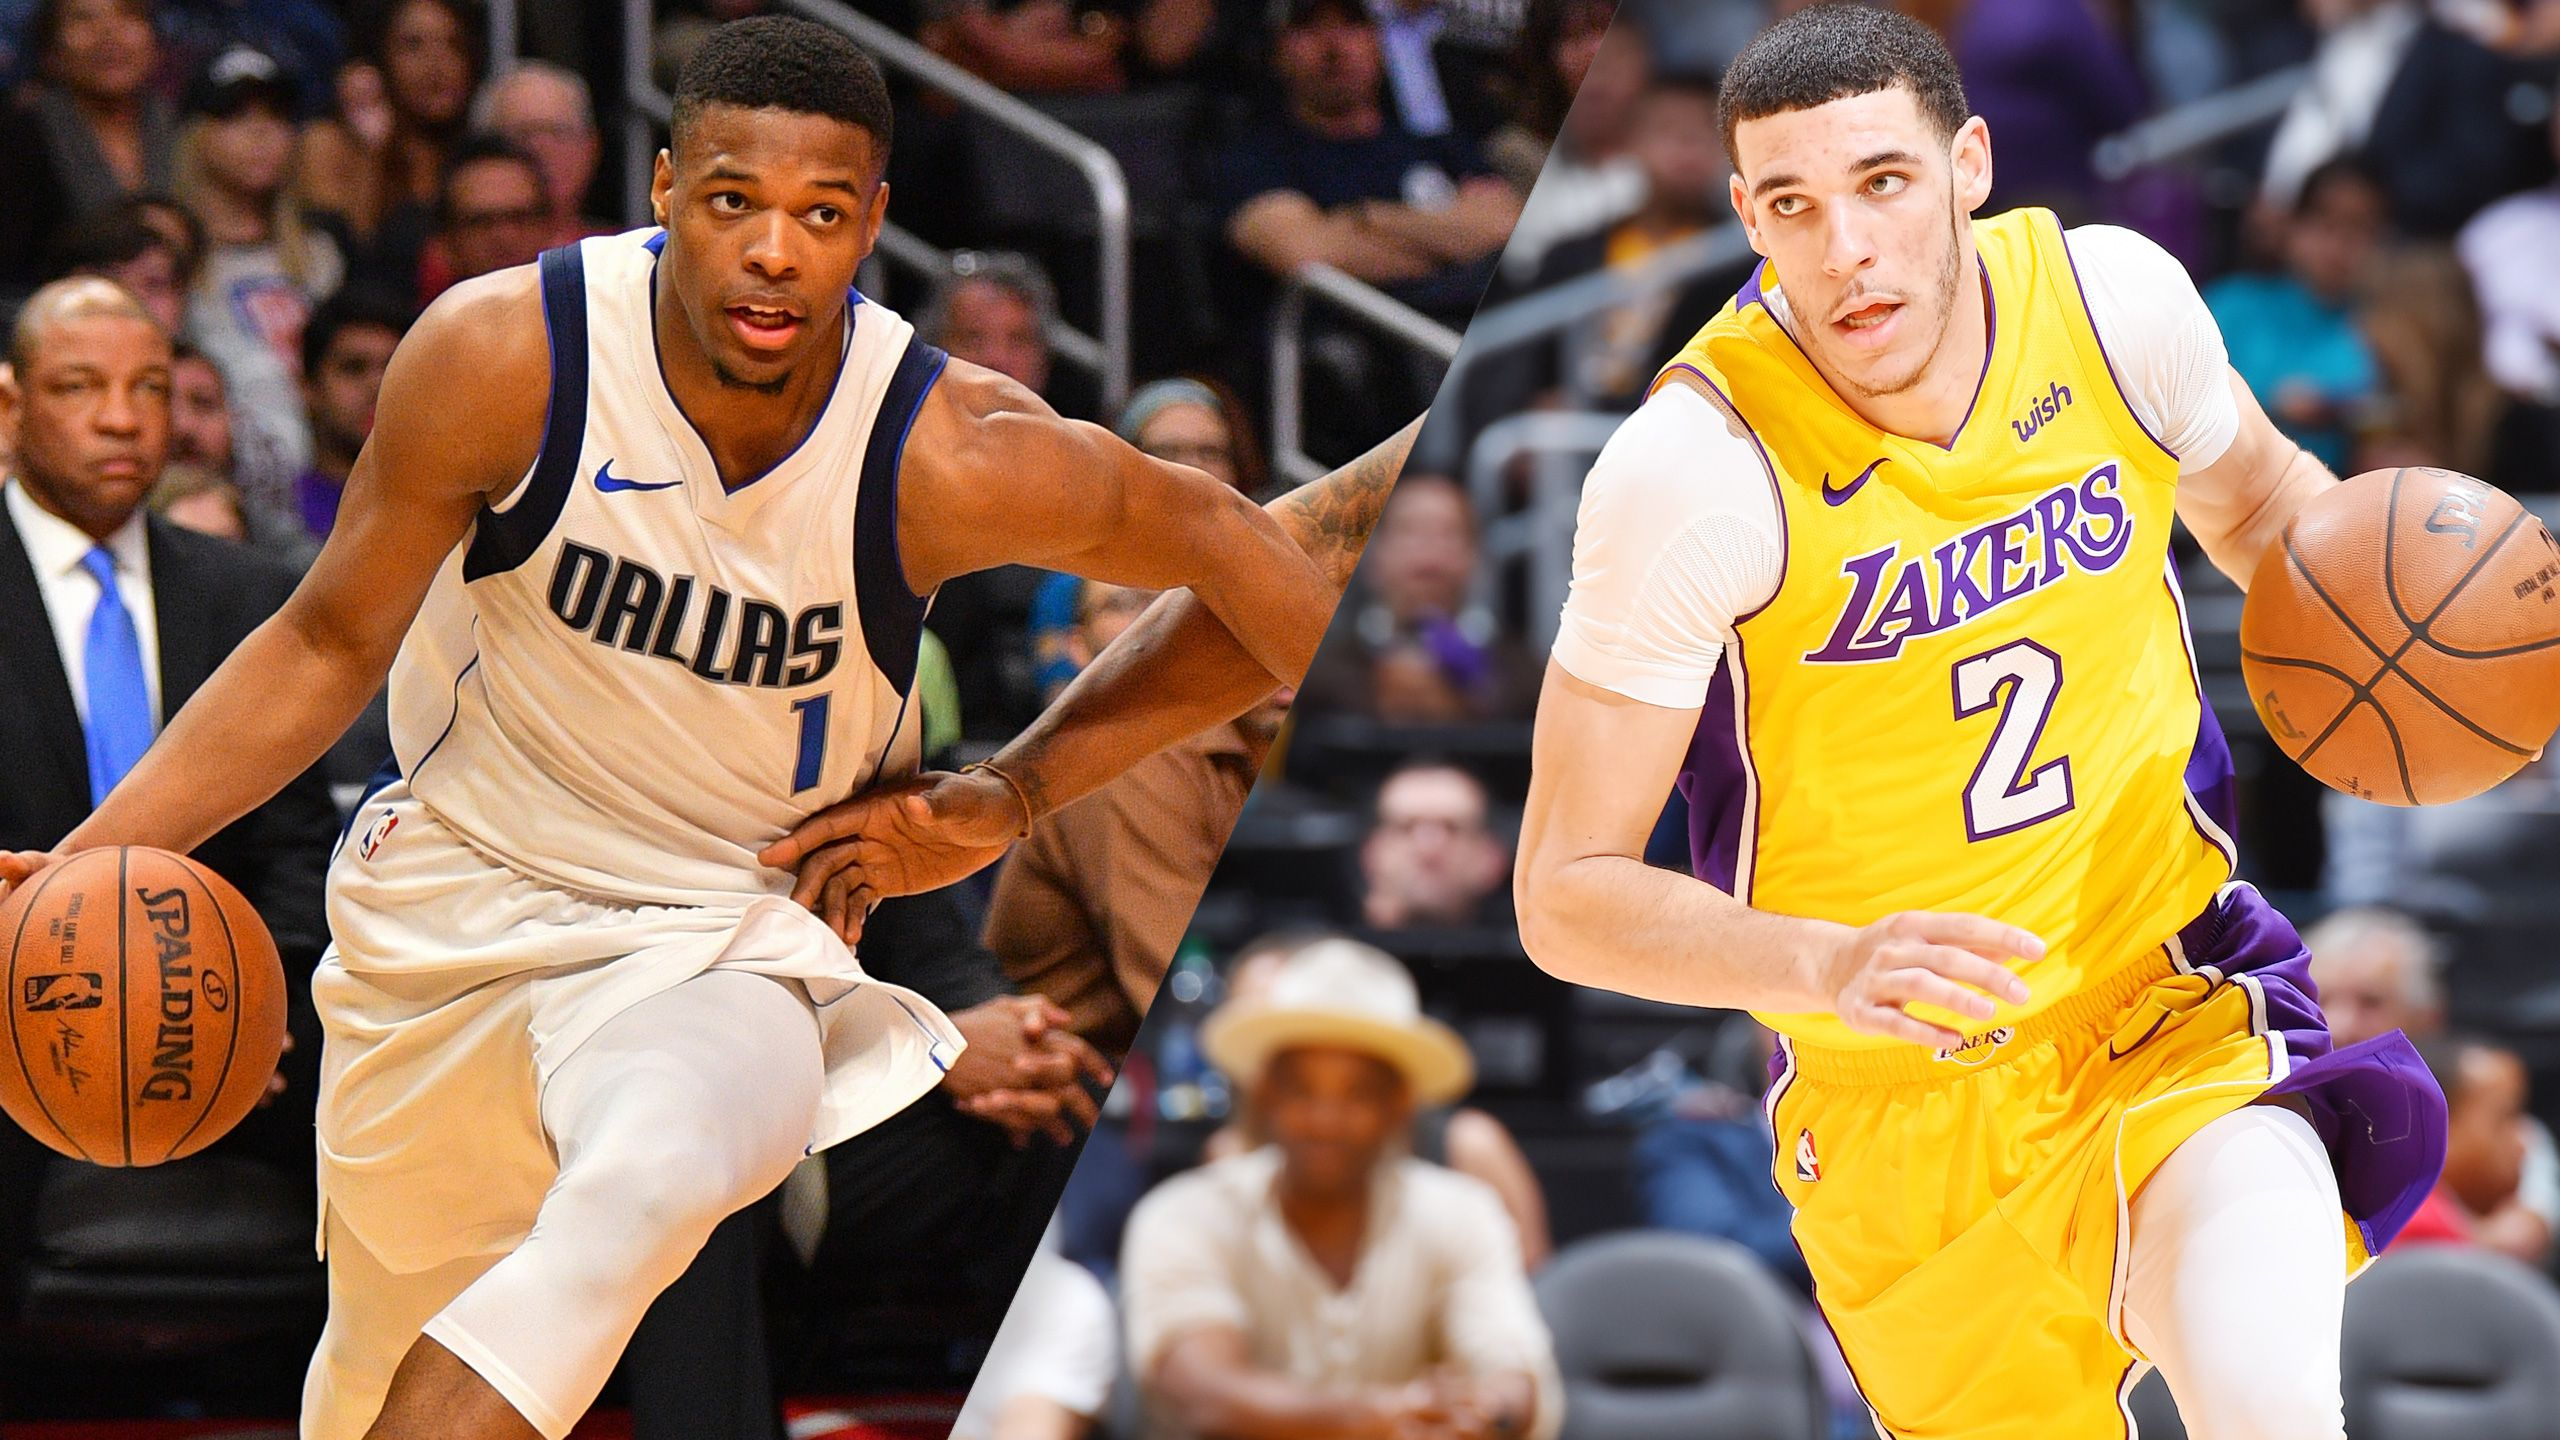 Dallas Mavericks vs. Los Angeles Lakers (re-air)